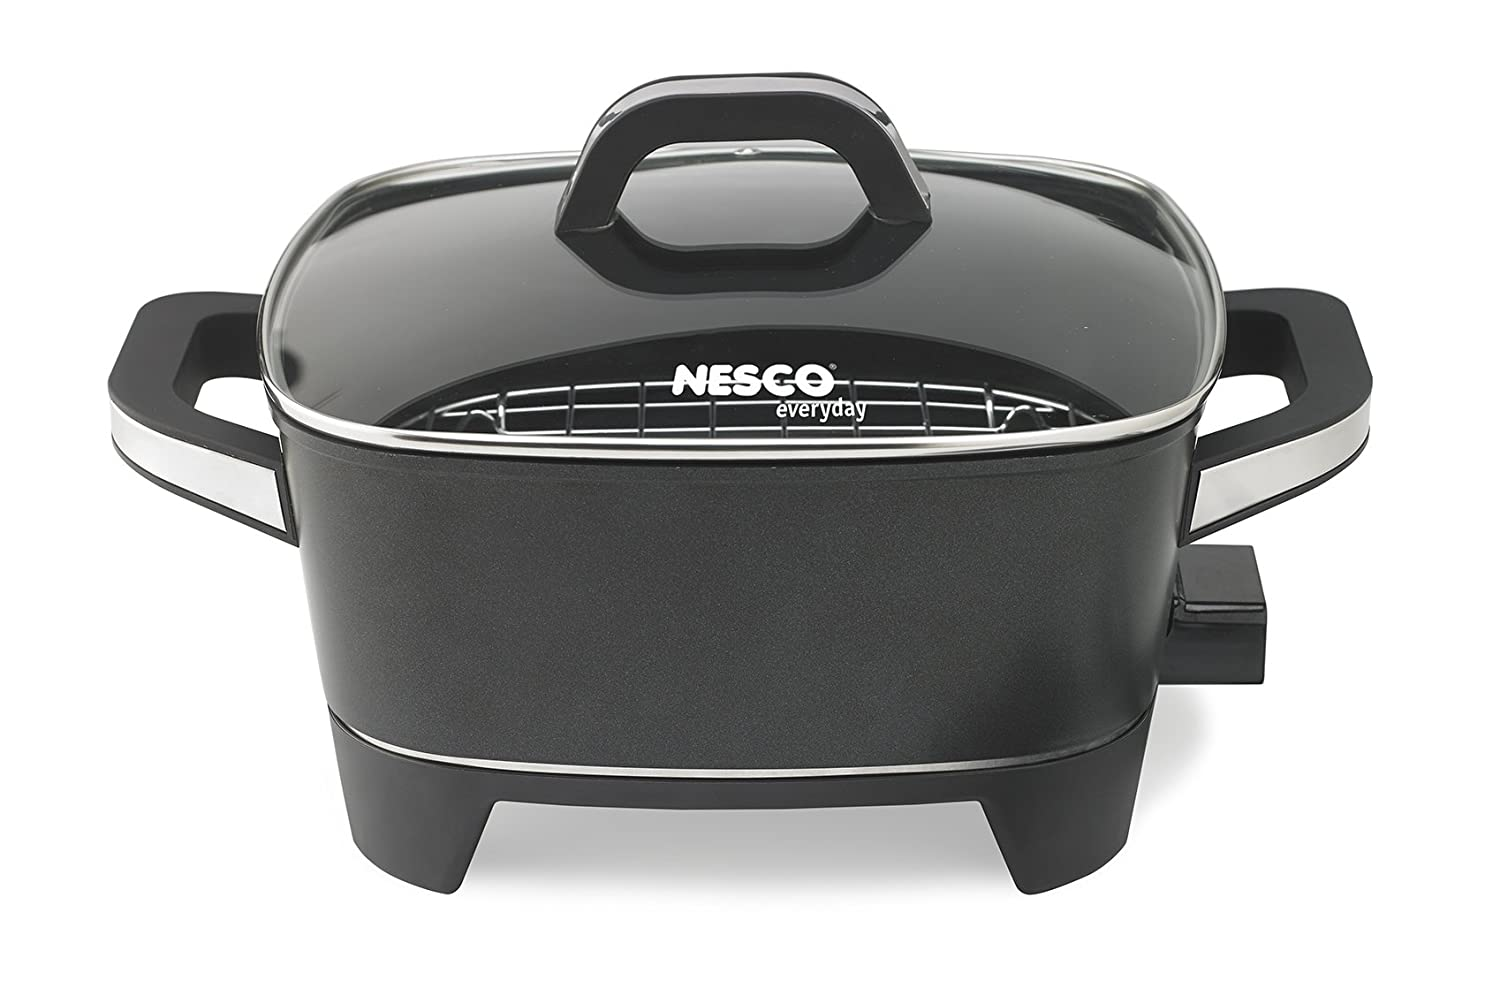 NESCO ES-12, Extra Deep Electric Skillet, Black, 12 inch, 1500 watts